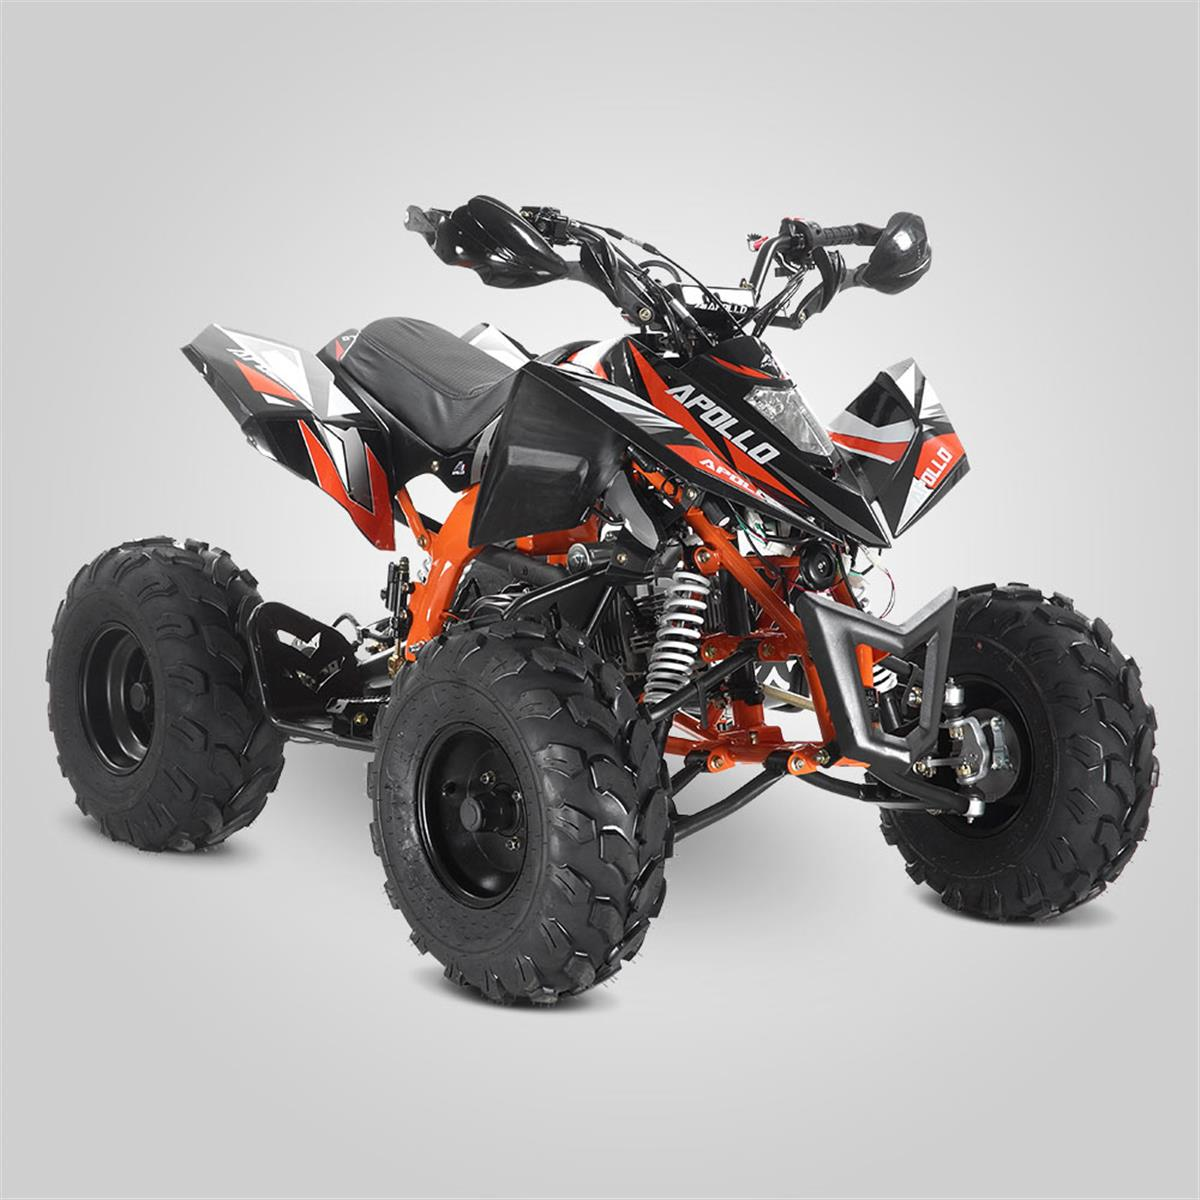 quad enfant 125cc de loisirs apollo smallmx dirt bike. Black Bedroom Furniture Sets. Home Design Ideas